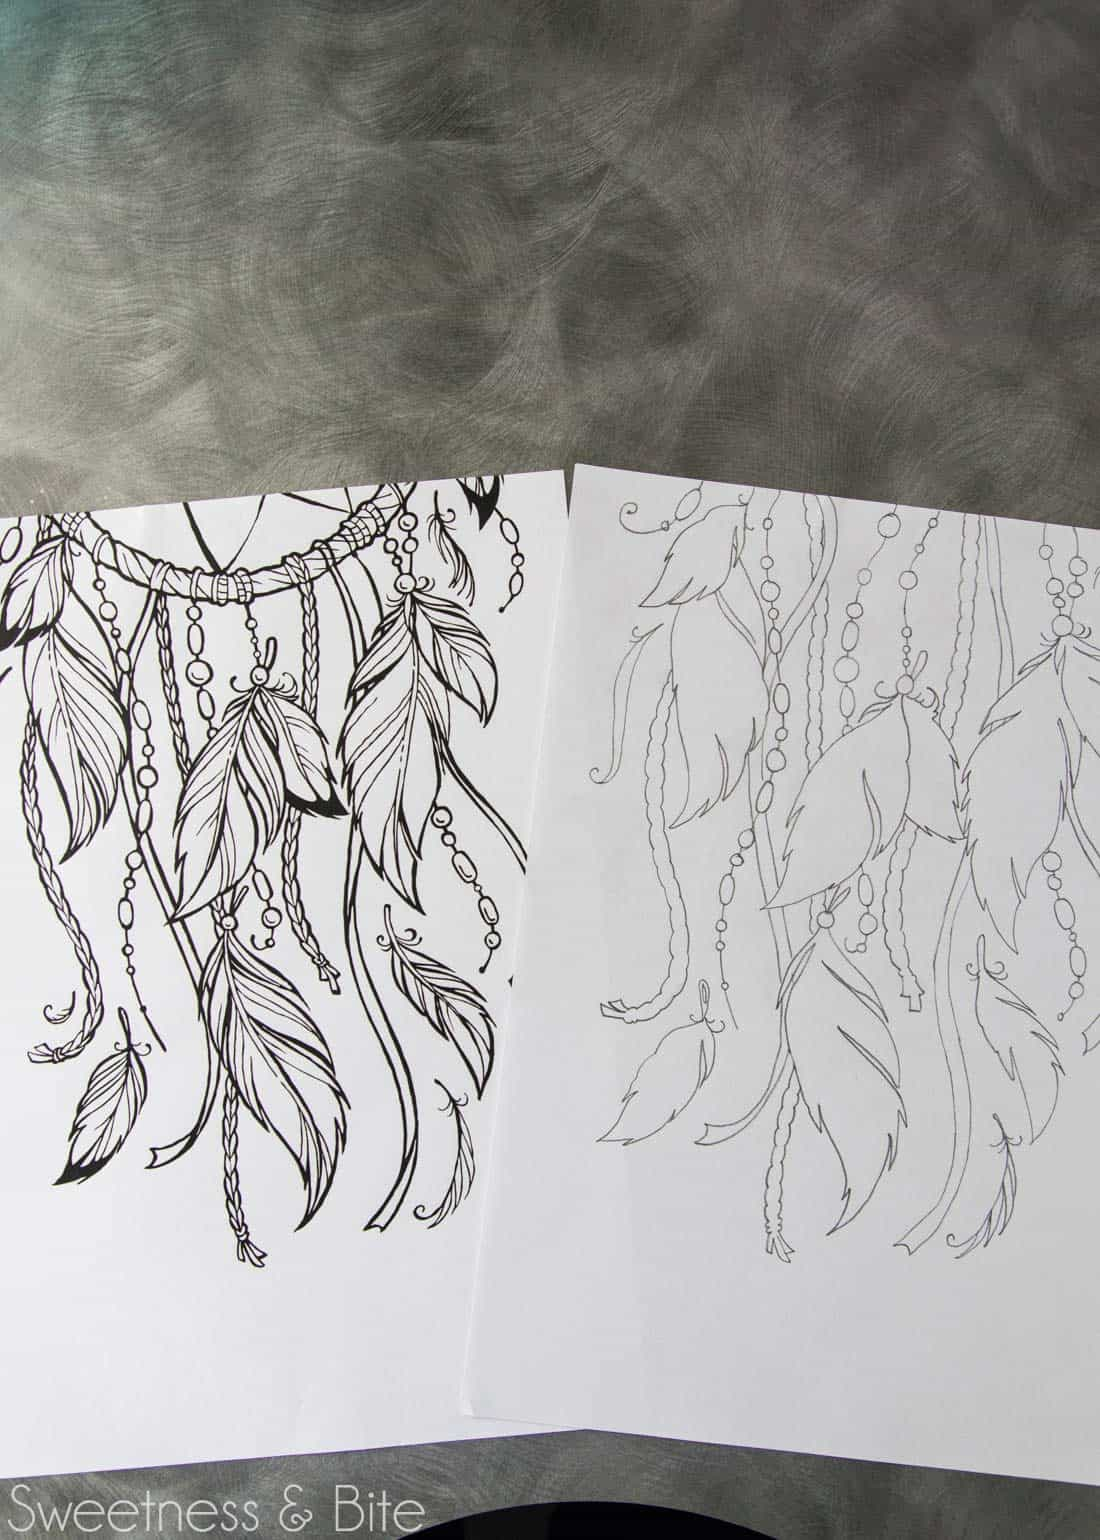 A dreamcatcher design printed onto paper and then traced onto another sheet of paper.